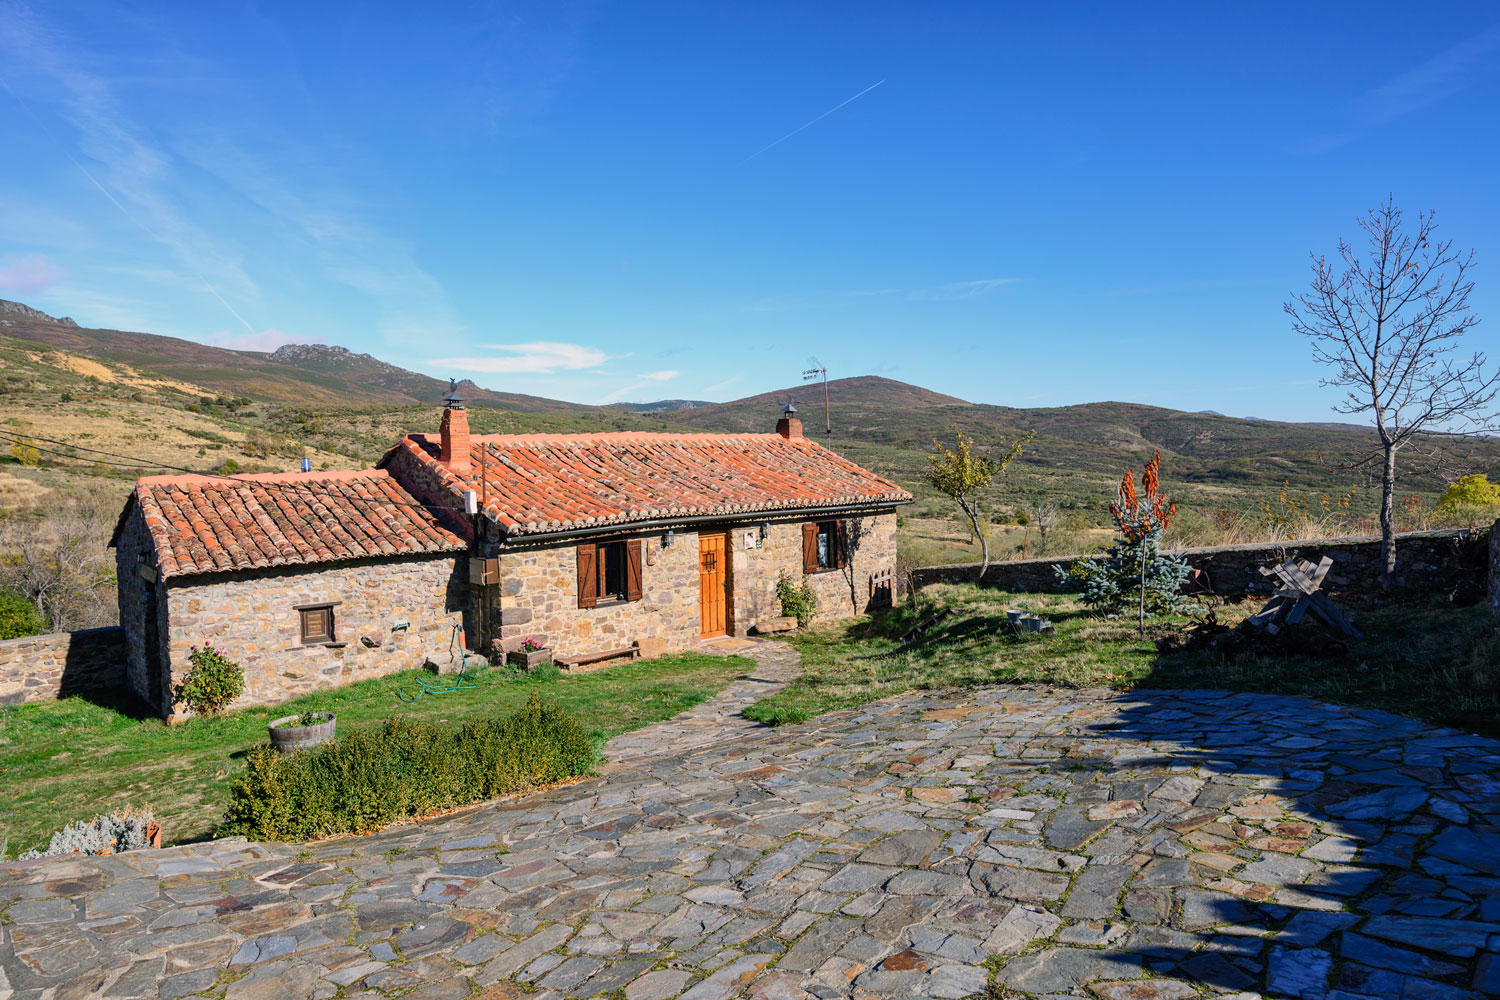 Casa rural la filera rom ntica parejas alta monta a - Casa rural romantica catalunya ...